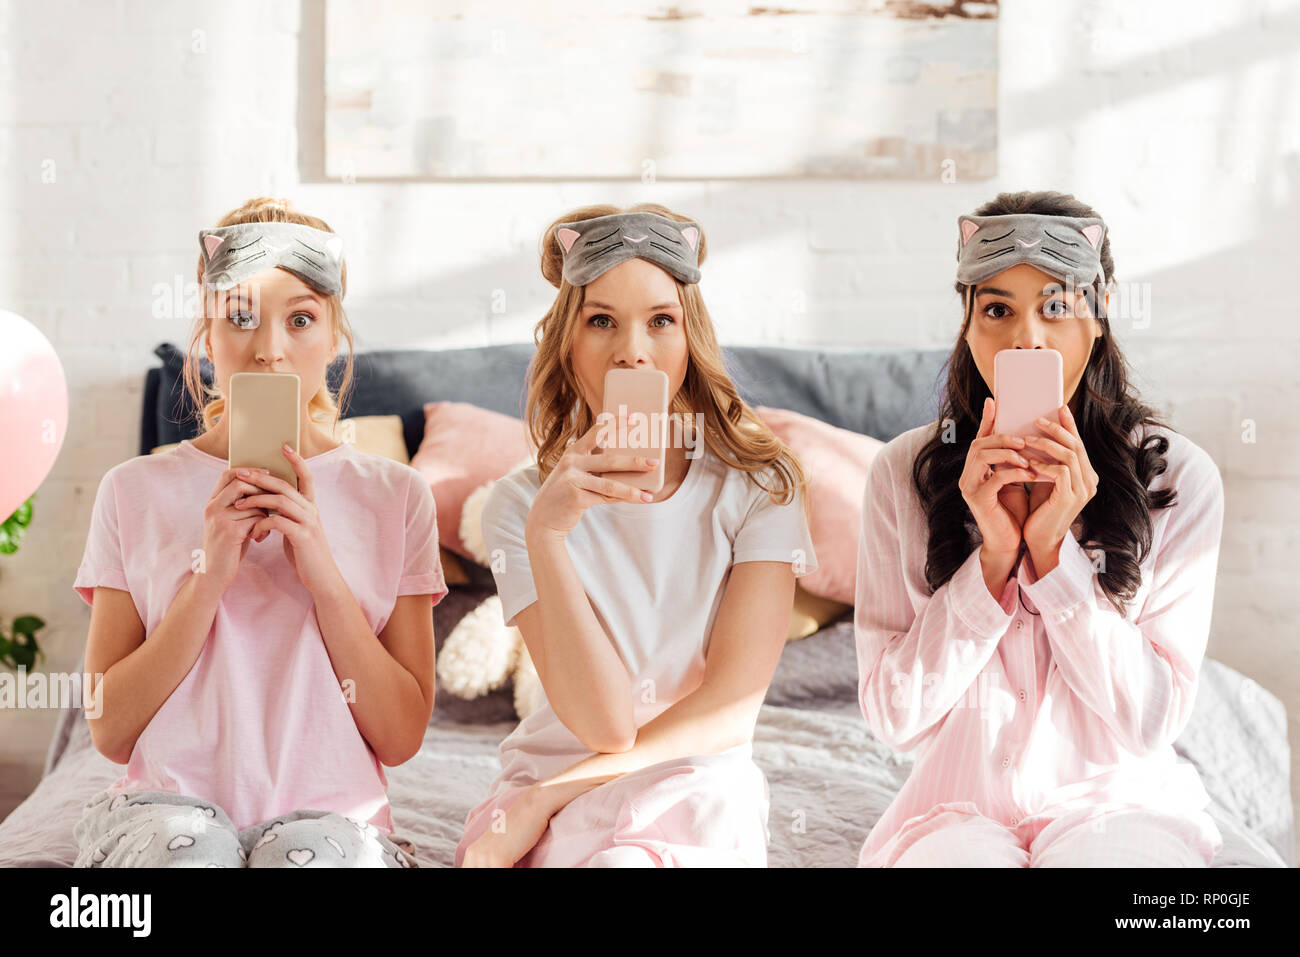 beautiful multicultural girls in sleeping masks sitting on bed and covering mouths with smartphones during pajama party - Stock Image